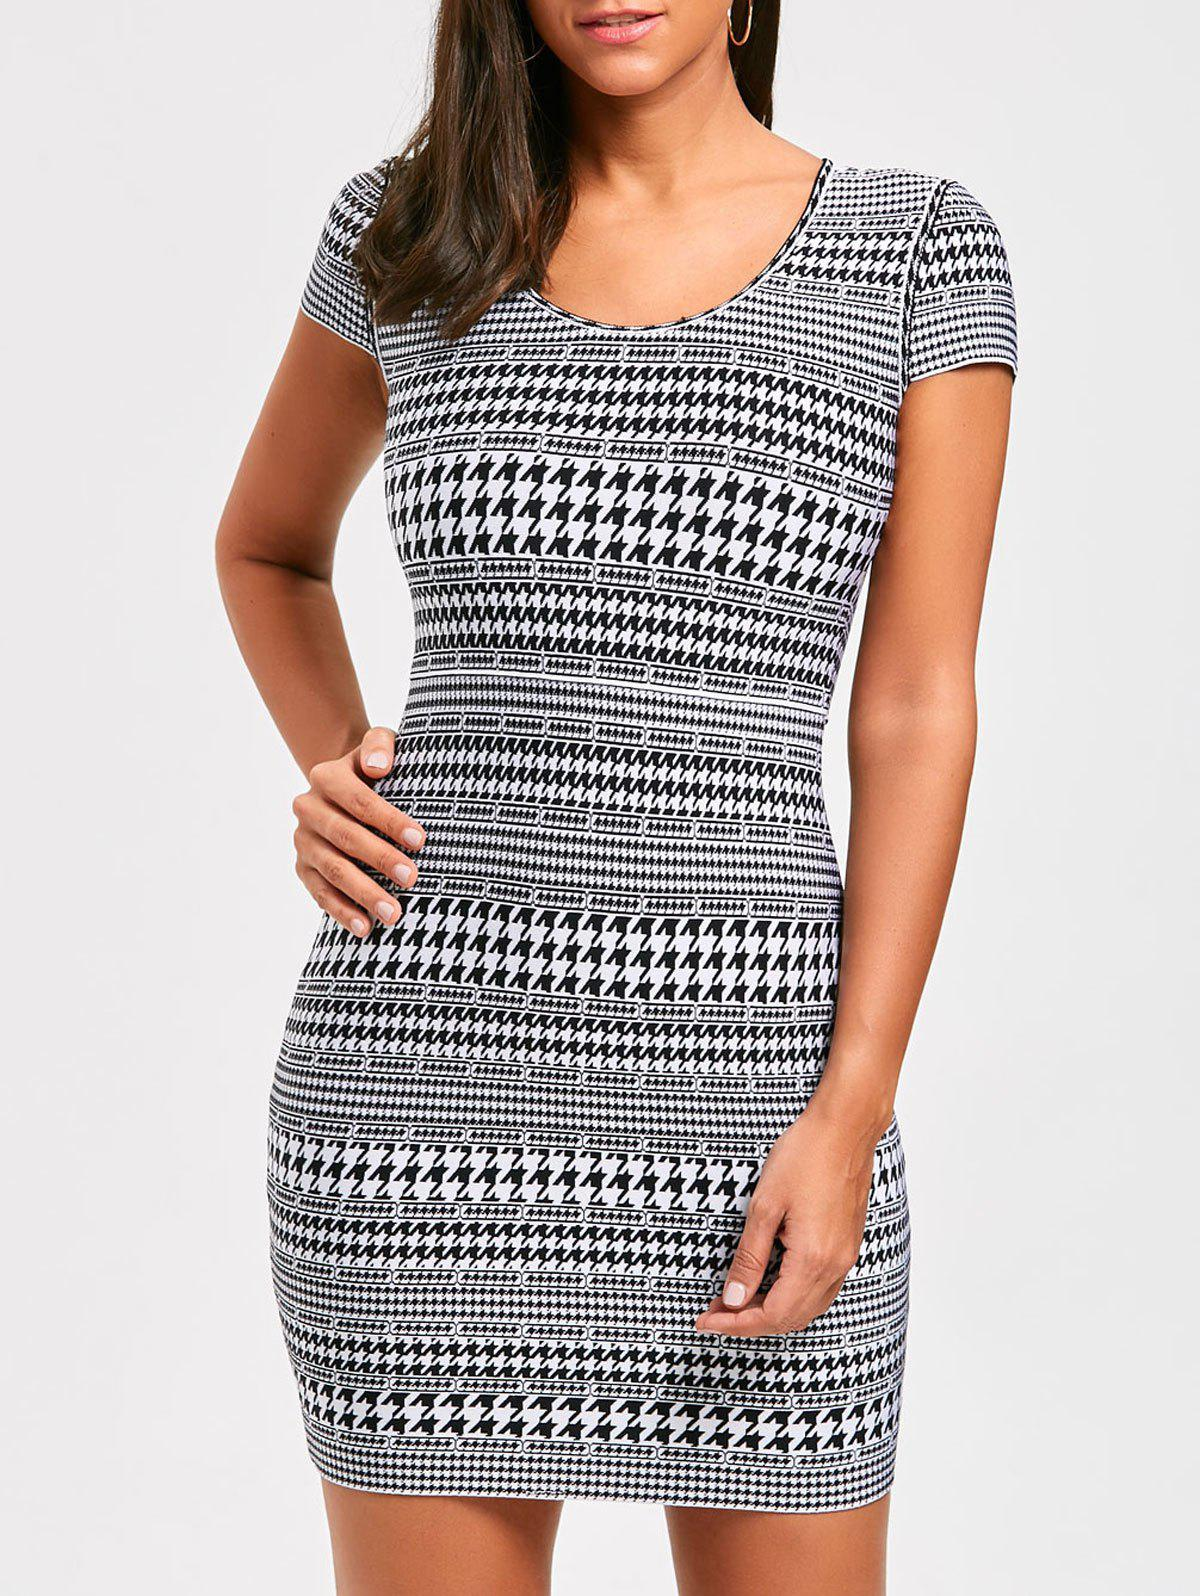 Cap Sleeve Houndstooth Print Bandage Dress - BLACK L